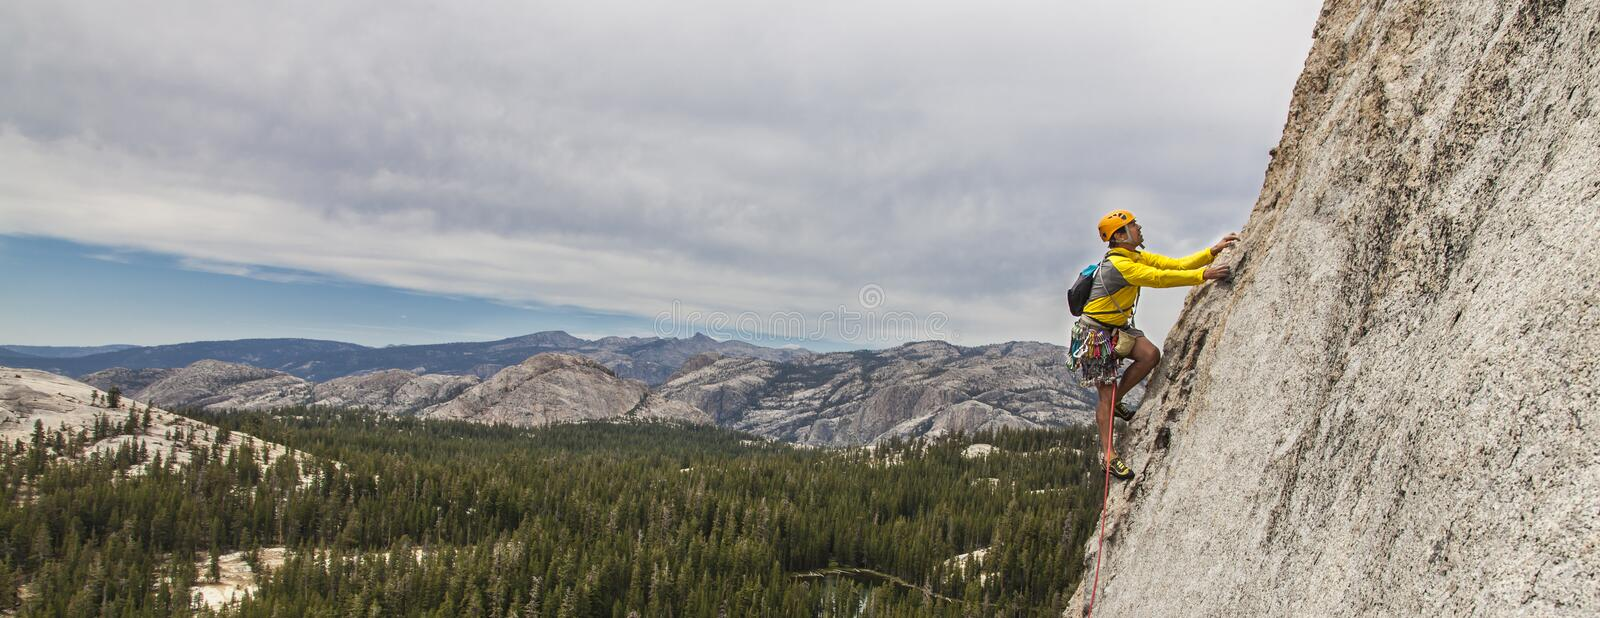 Rock climber on the edge. royalty free stock image